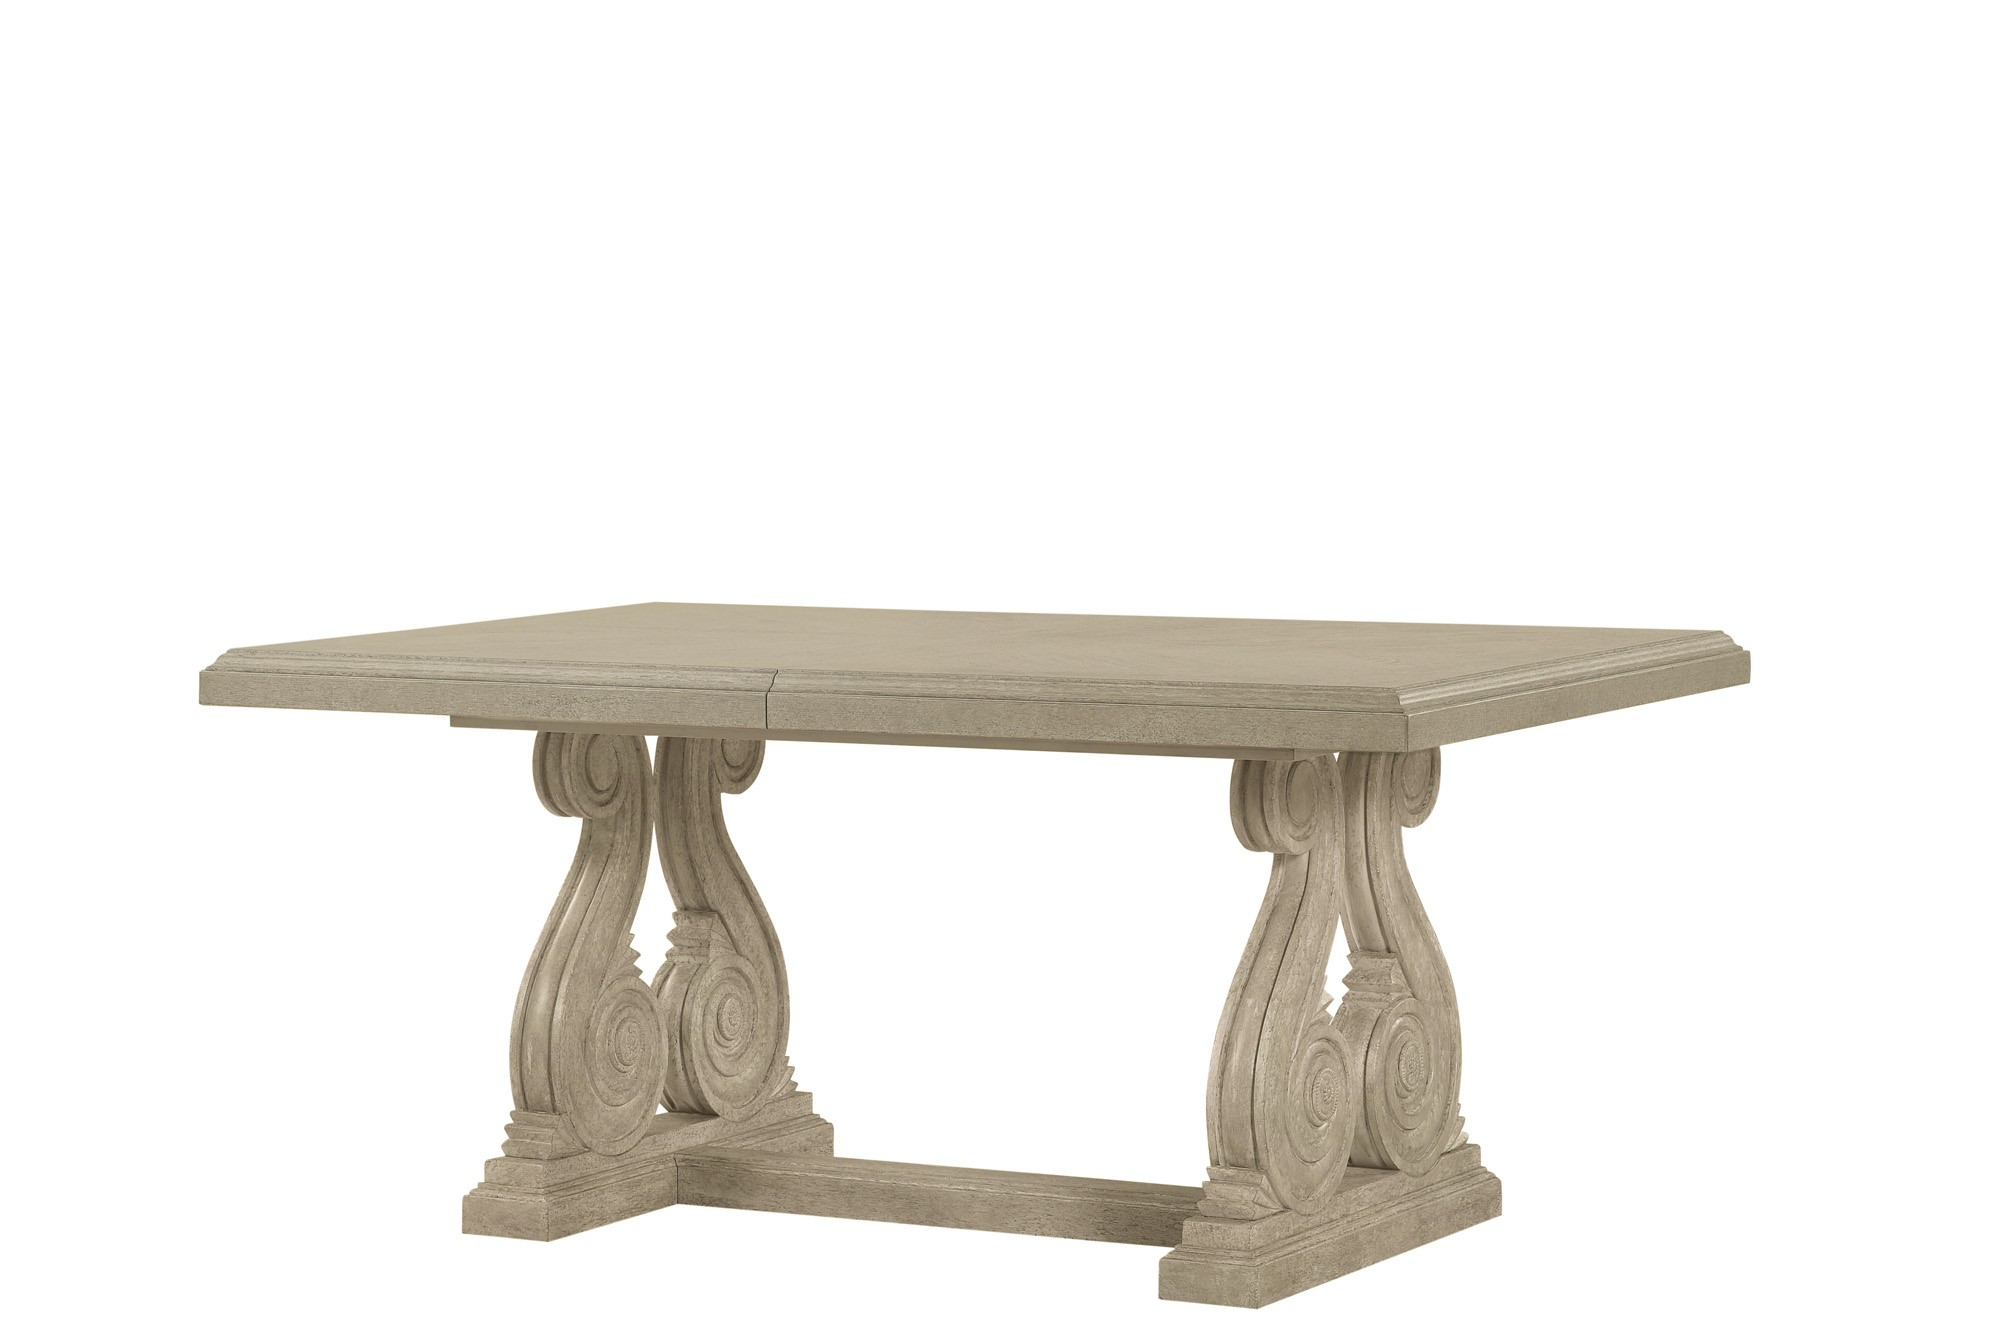 Rectangular Dining Tables With Regard To 2019 Arch Salvage Rectangular Dining Table (View 17 of 25)